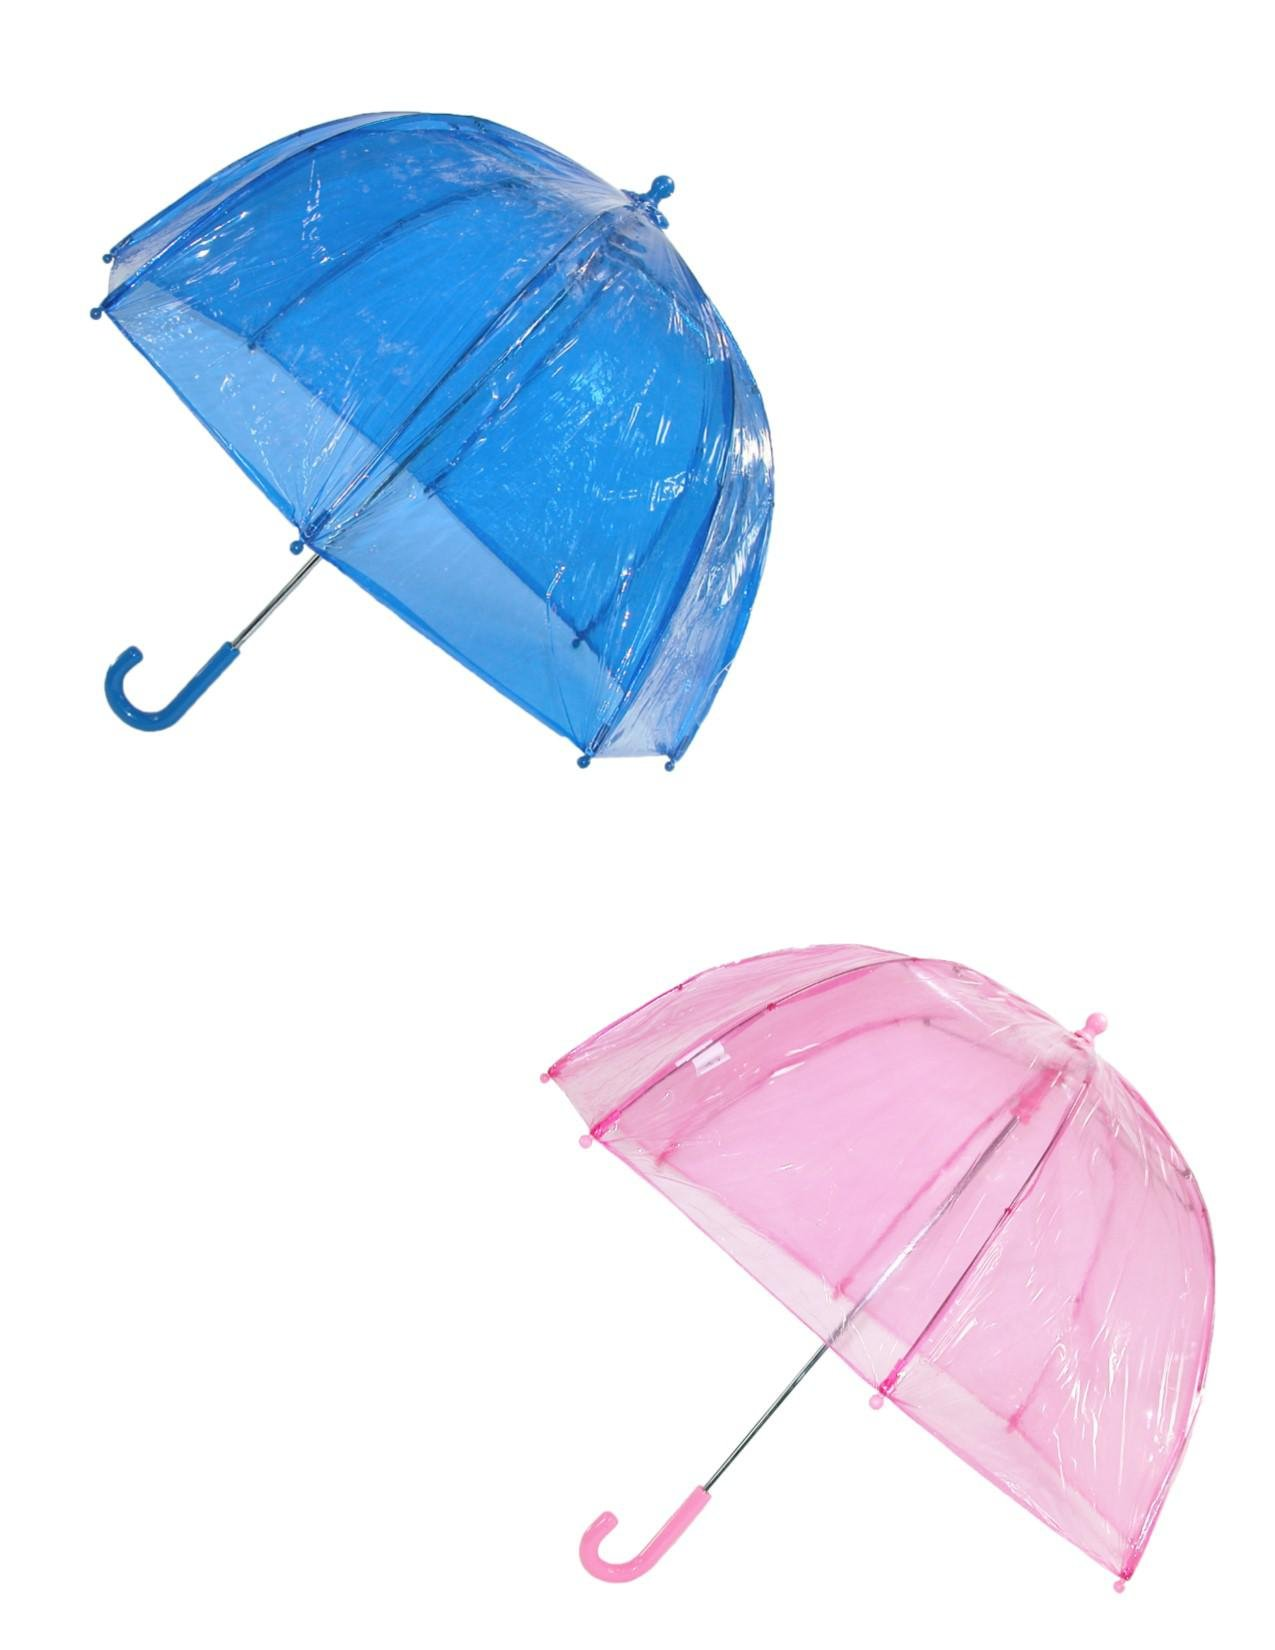 totes ISOTONER Kids Clear Bubble Umbrella (Pack of 2), Pink/Blue